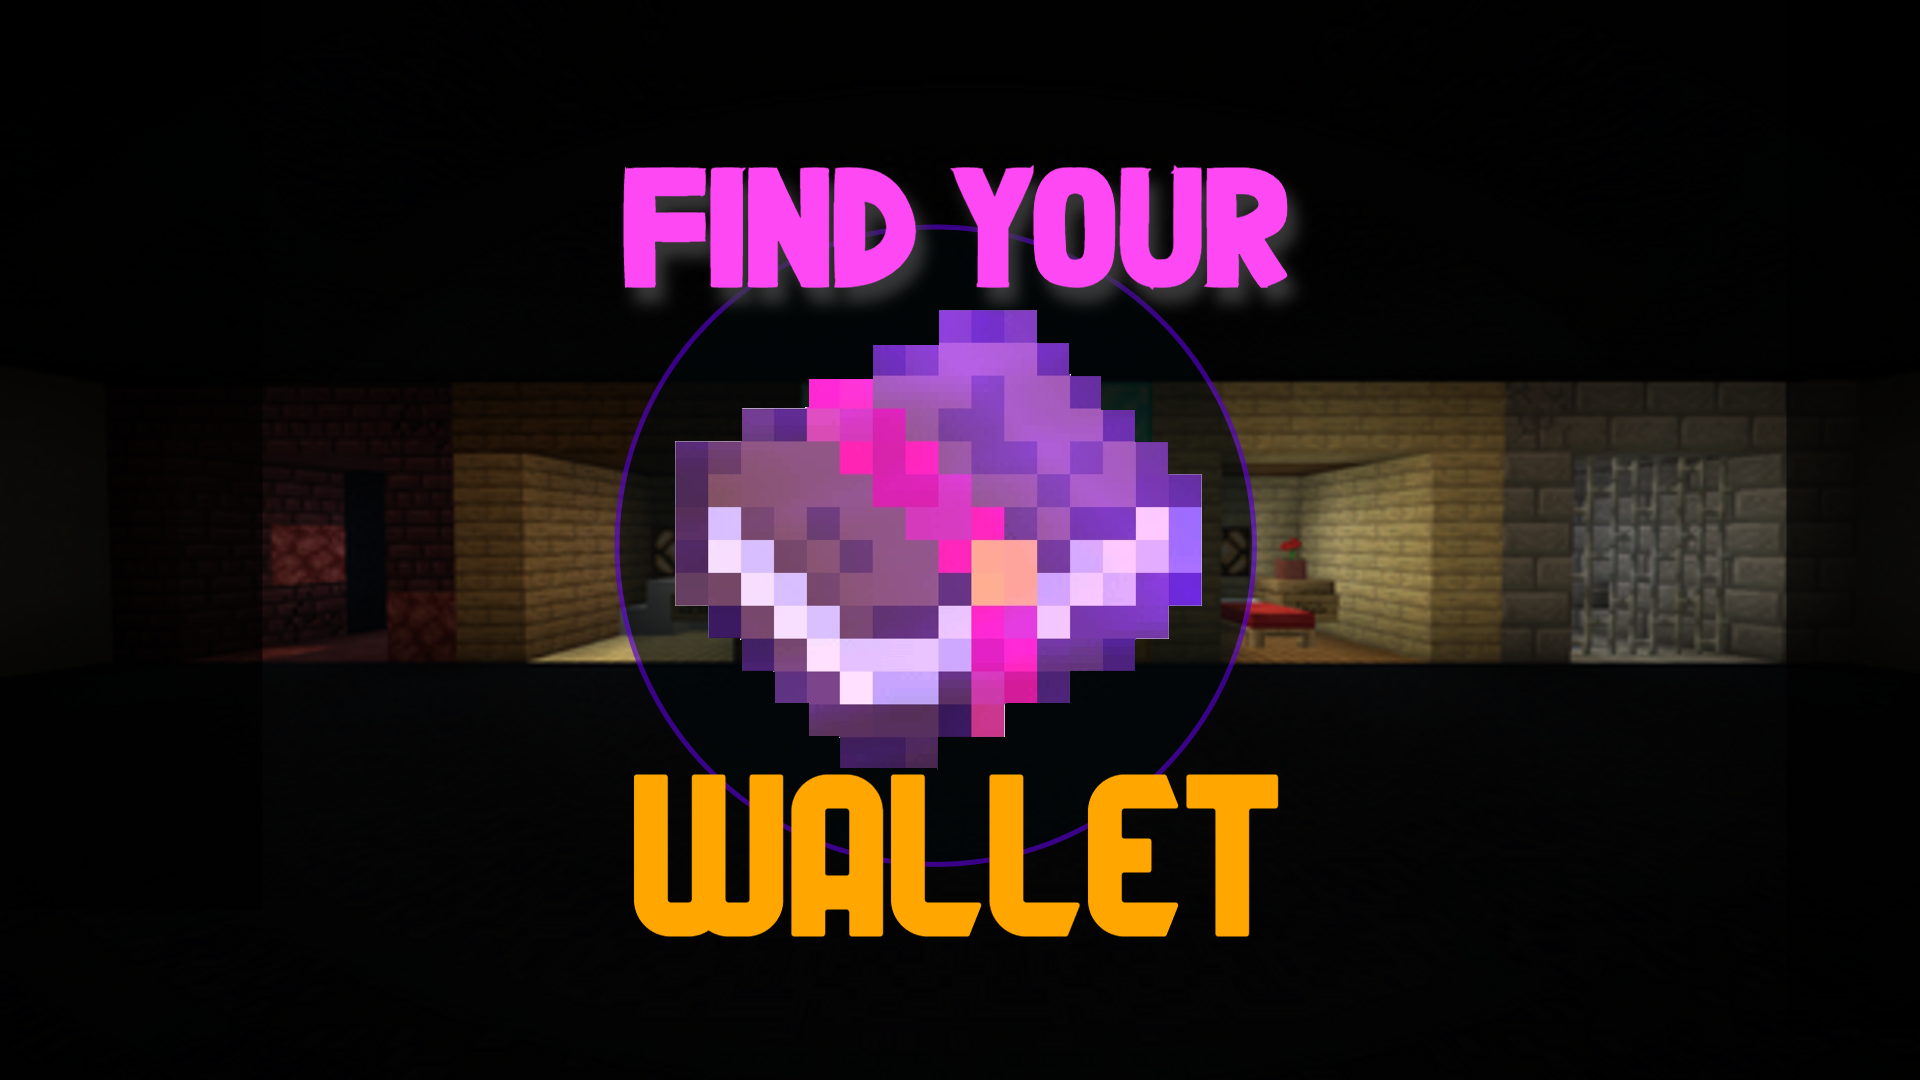 Tải về Find Your Wallet: Remastered cho Minecraft 1.16.4